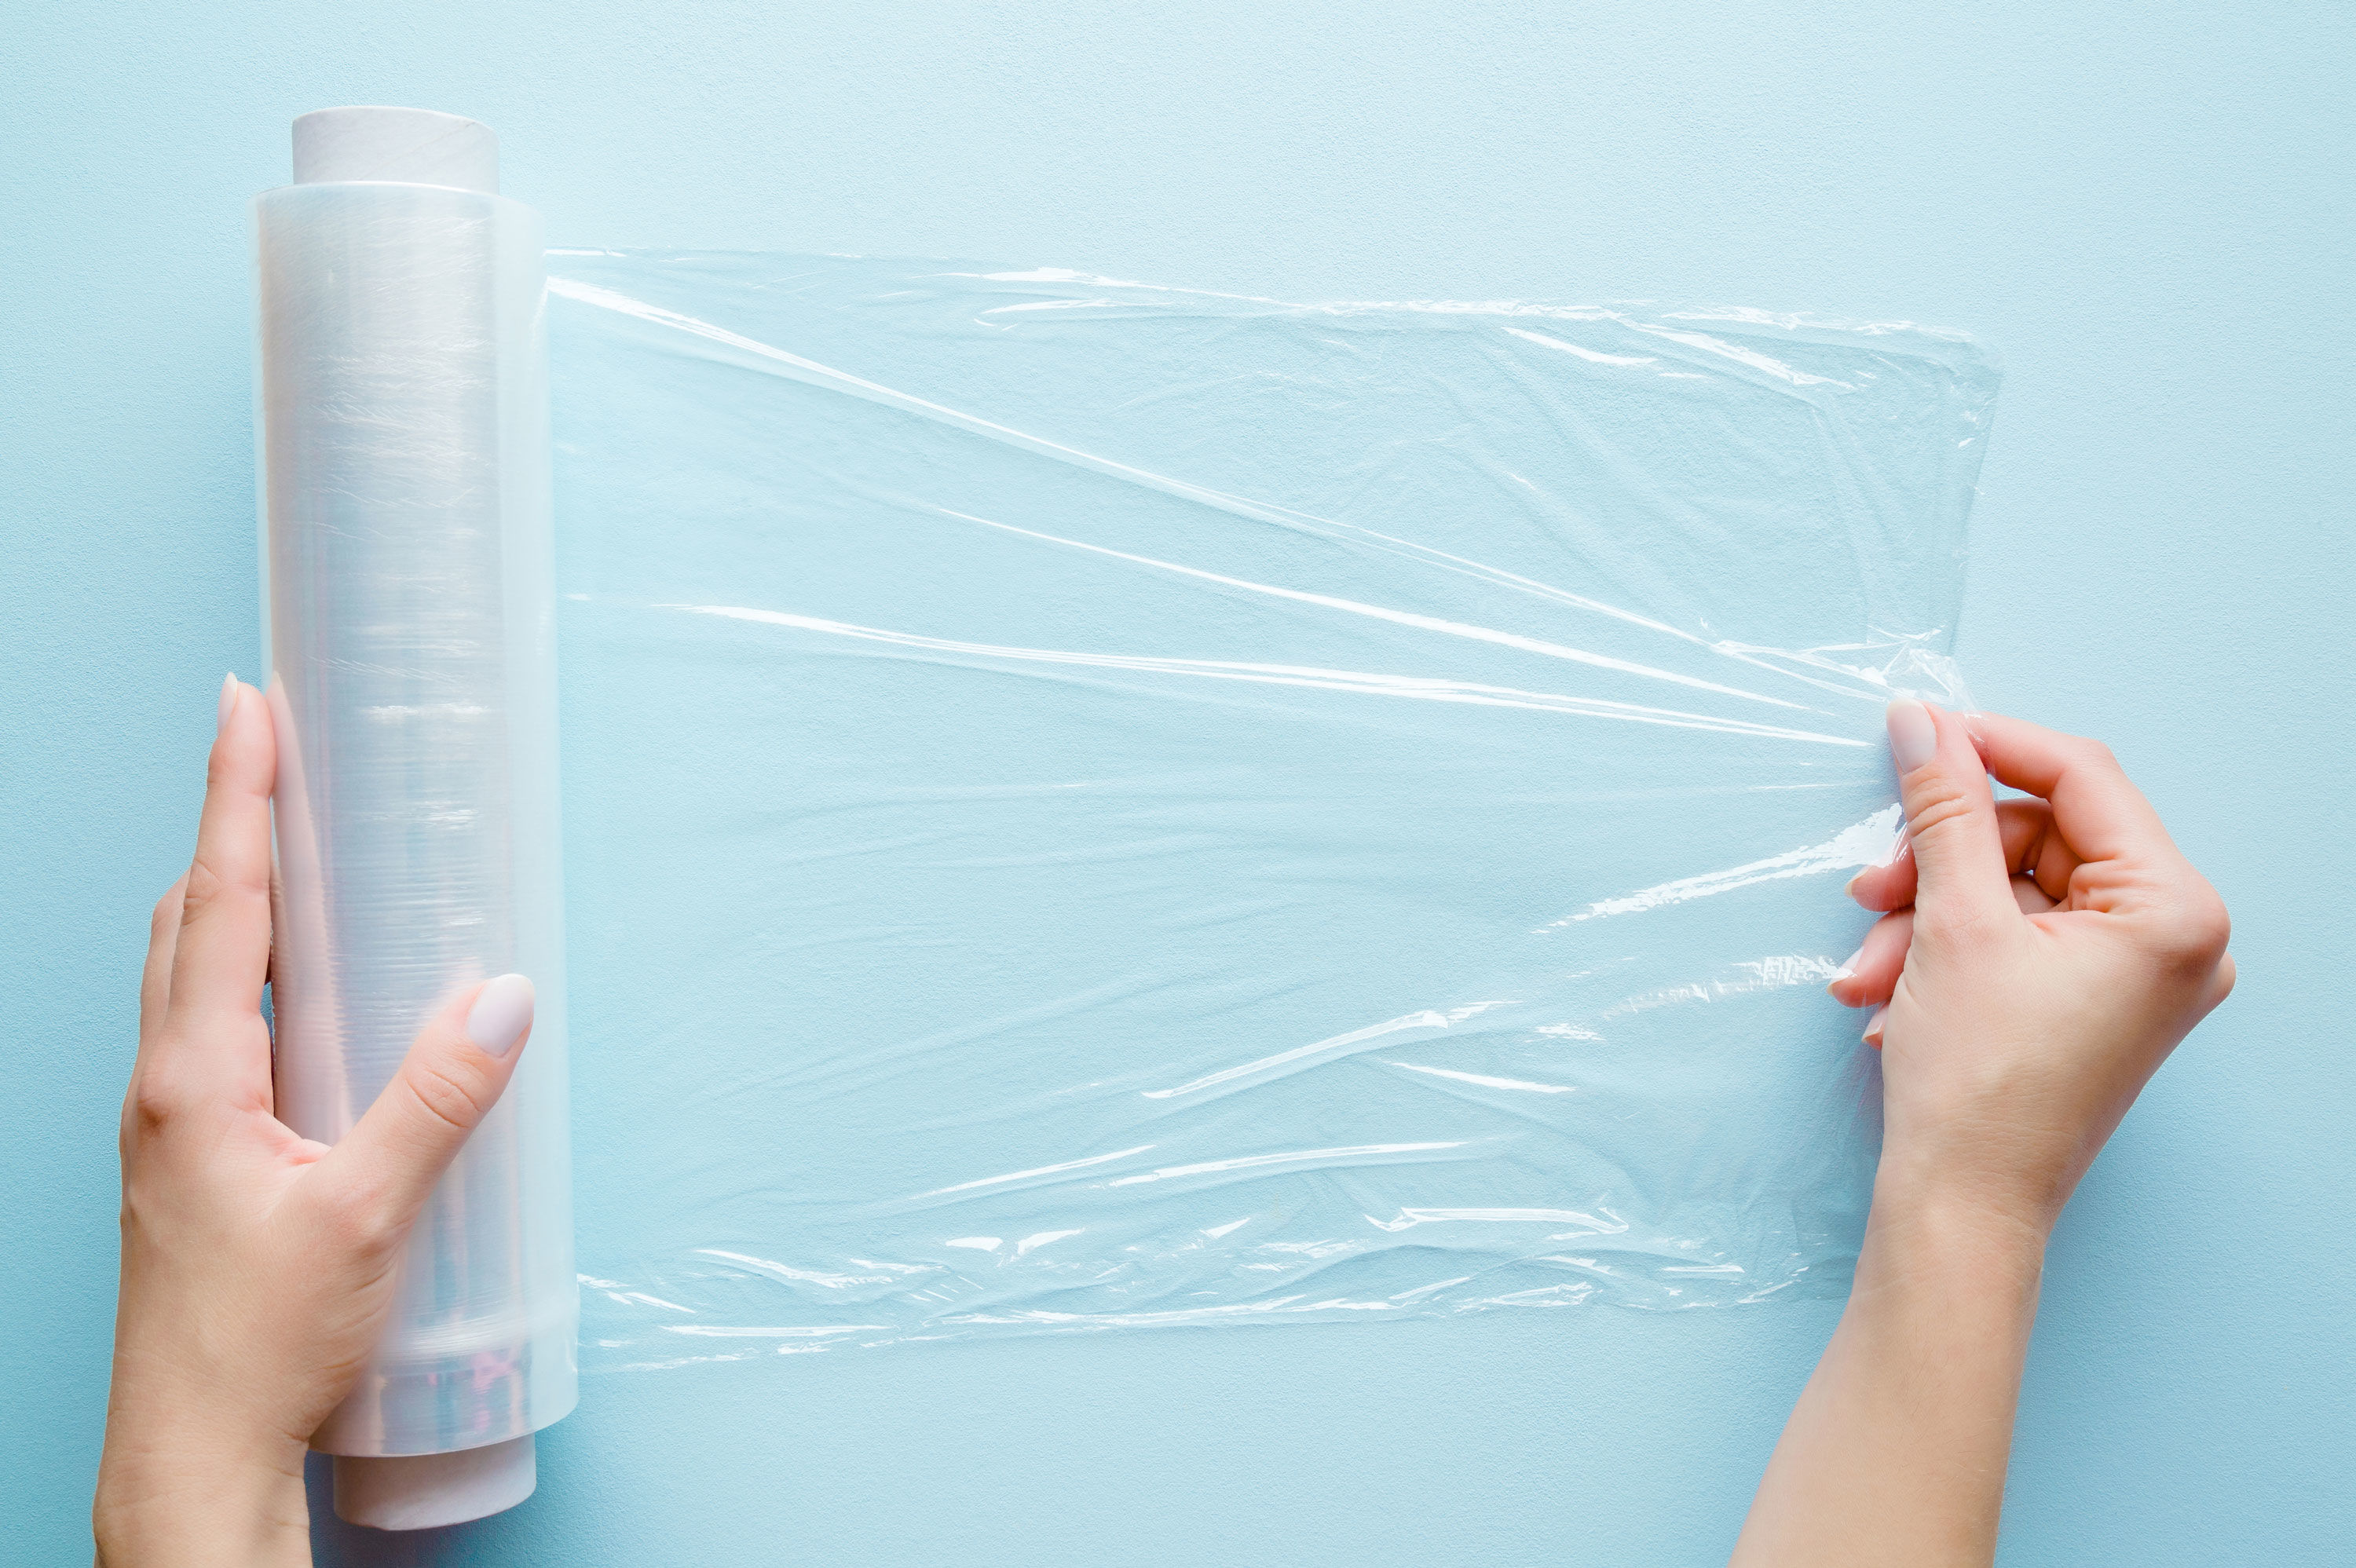 Why You Should Store Your Plastic Wrap In The Freezer